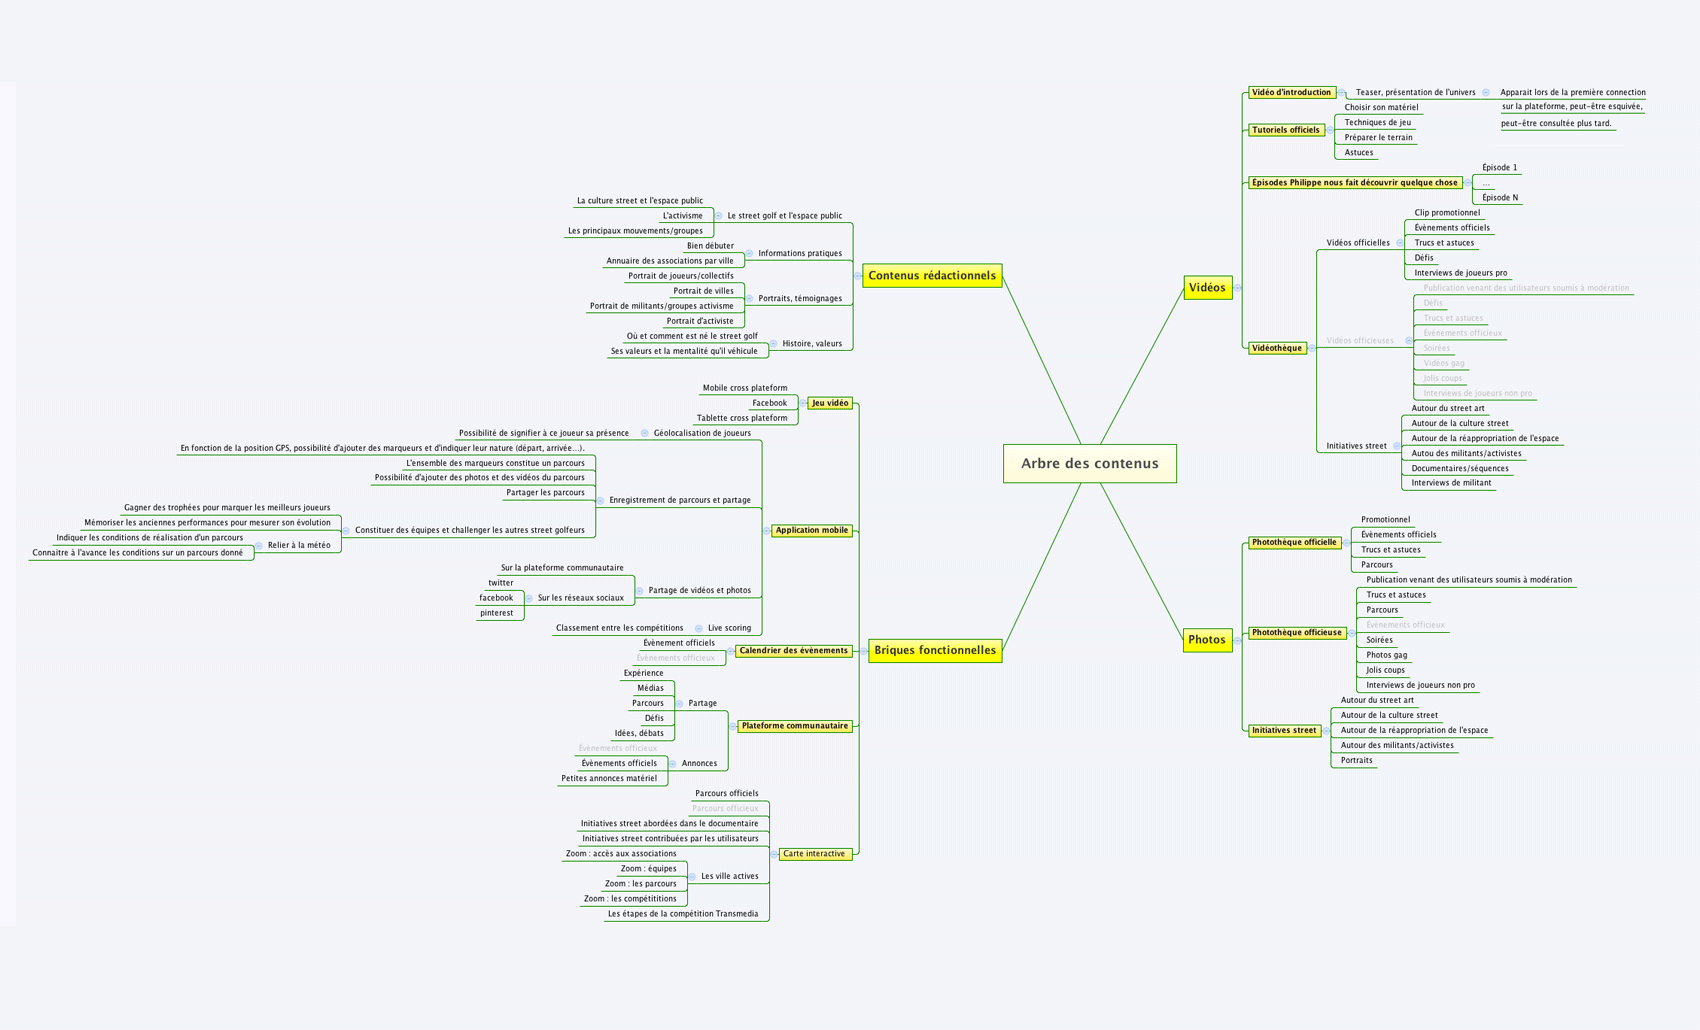 Exploration map ordered by content typology